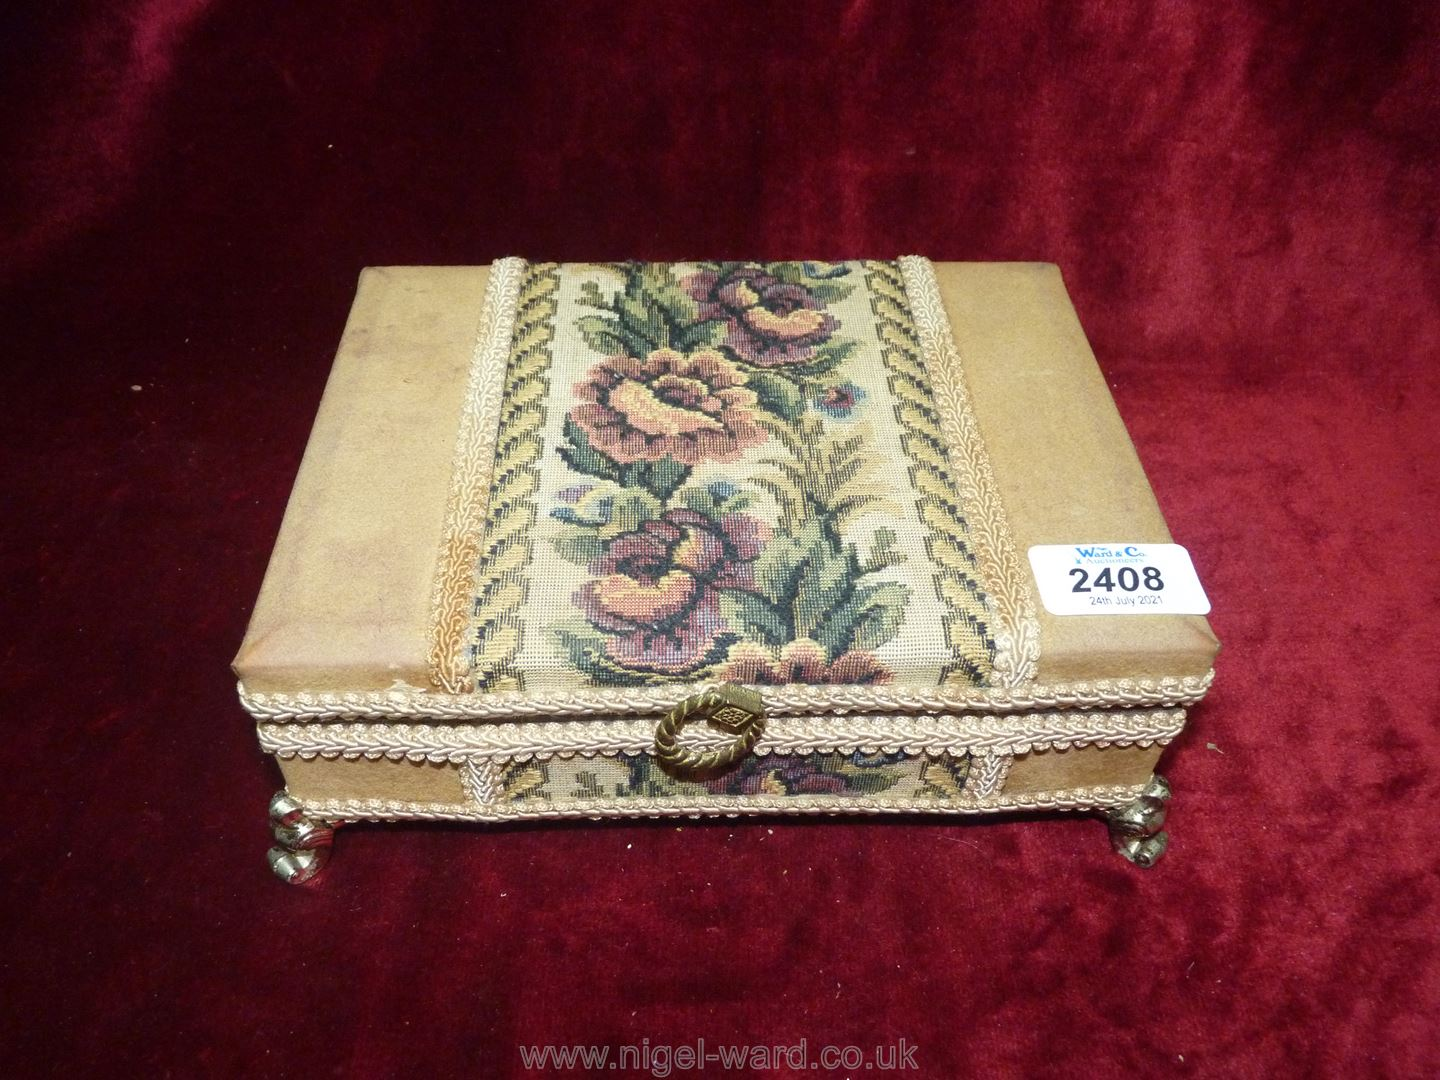 A fabric covered musical jewellery box and contents including brooches, cameos, - Image 2 of 2